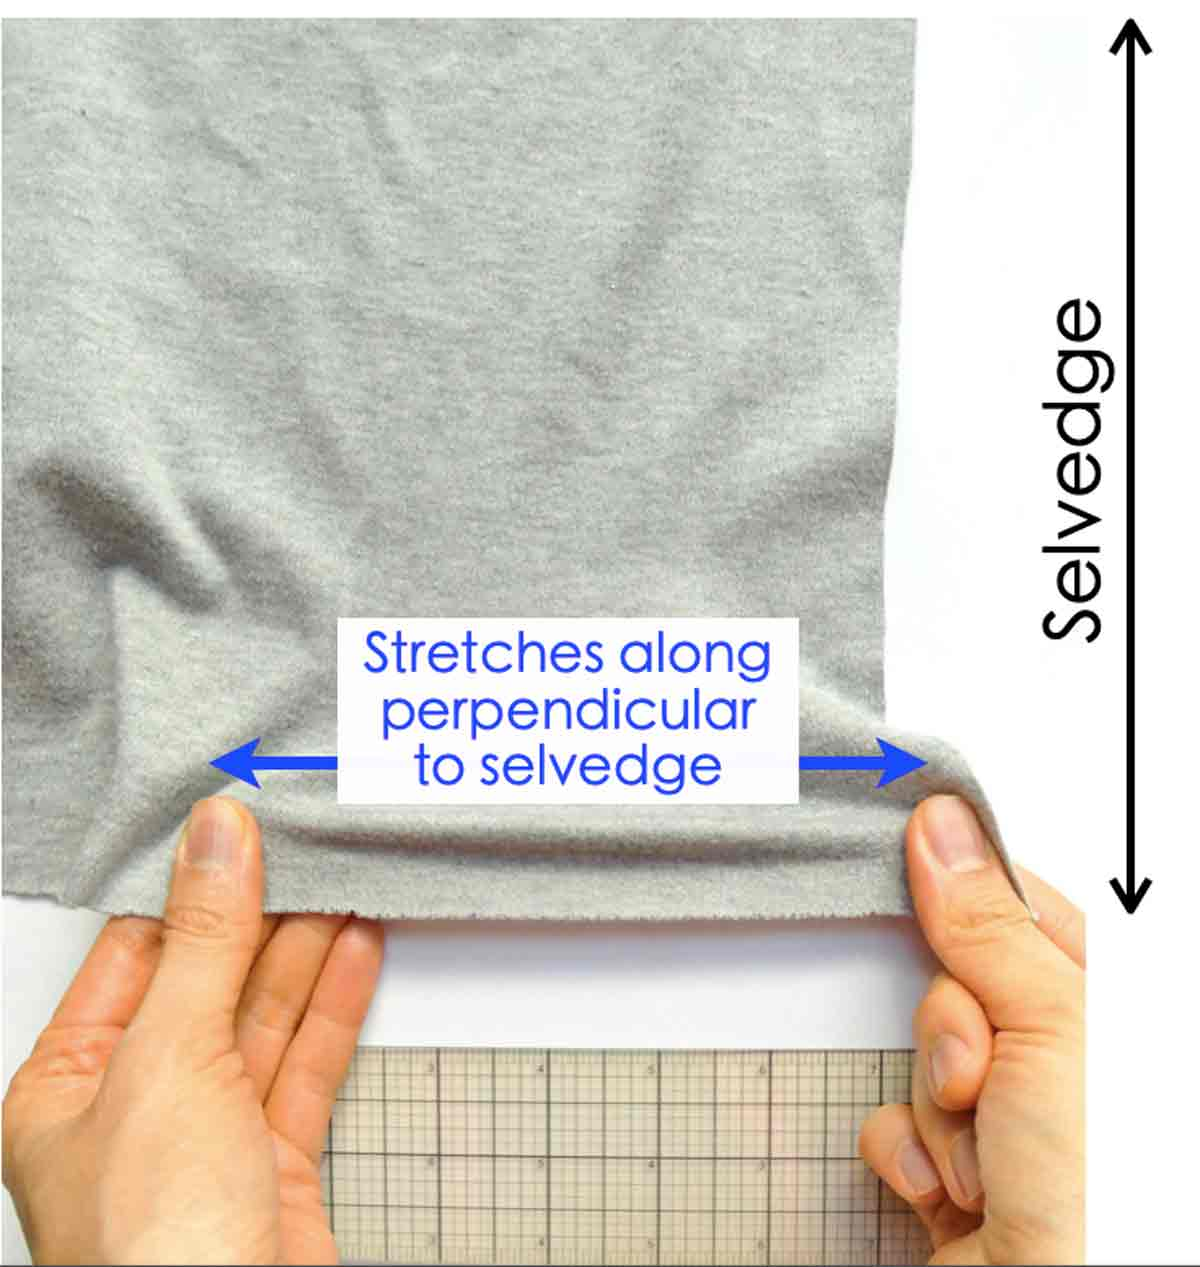 Shows hands pulling on 2 way stretch knit in horizontal direction